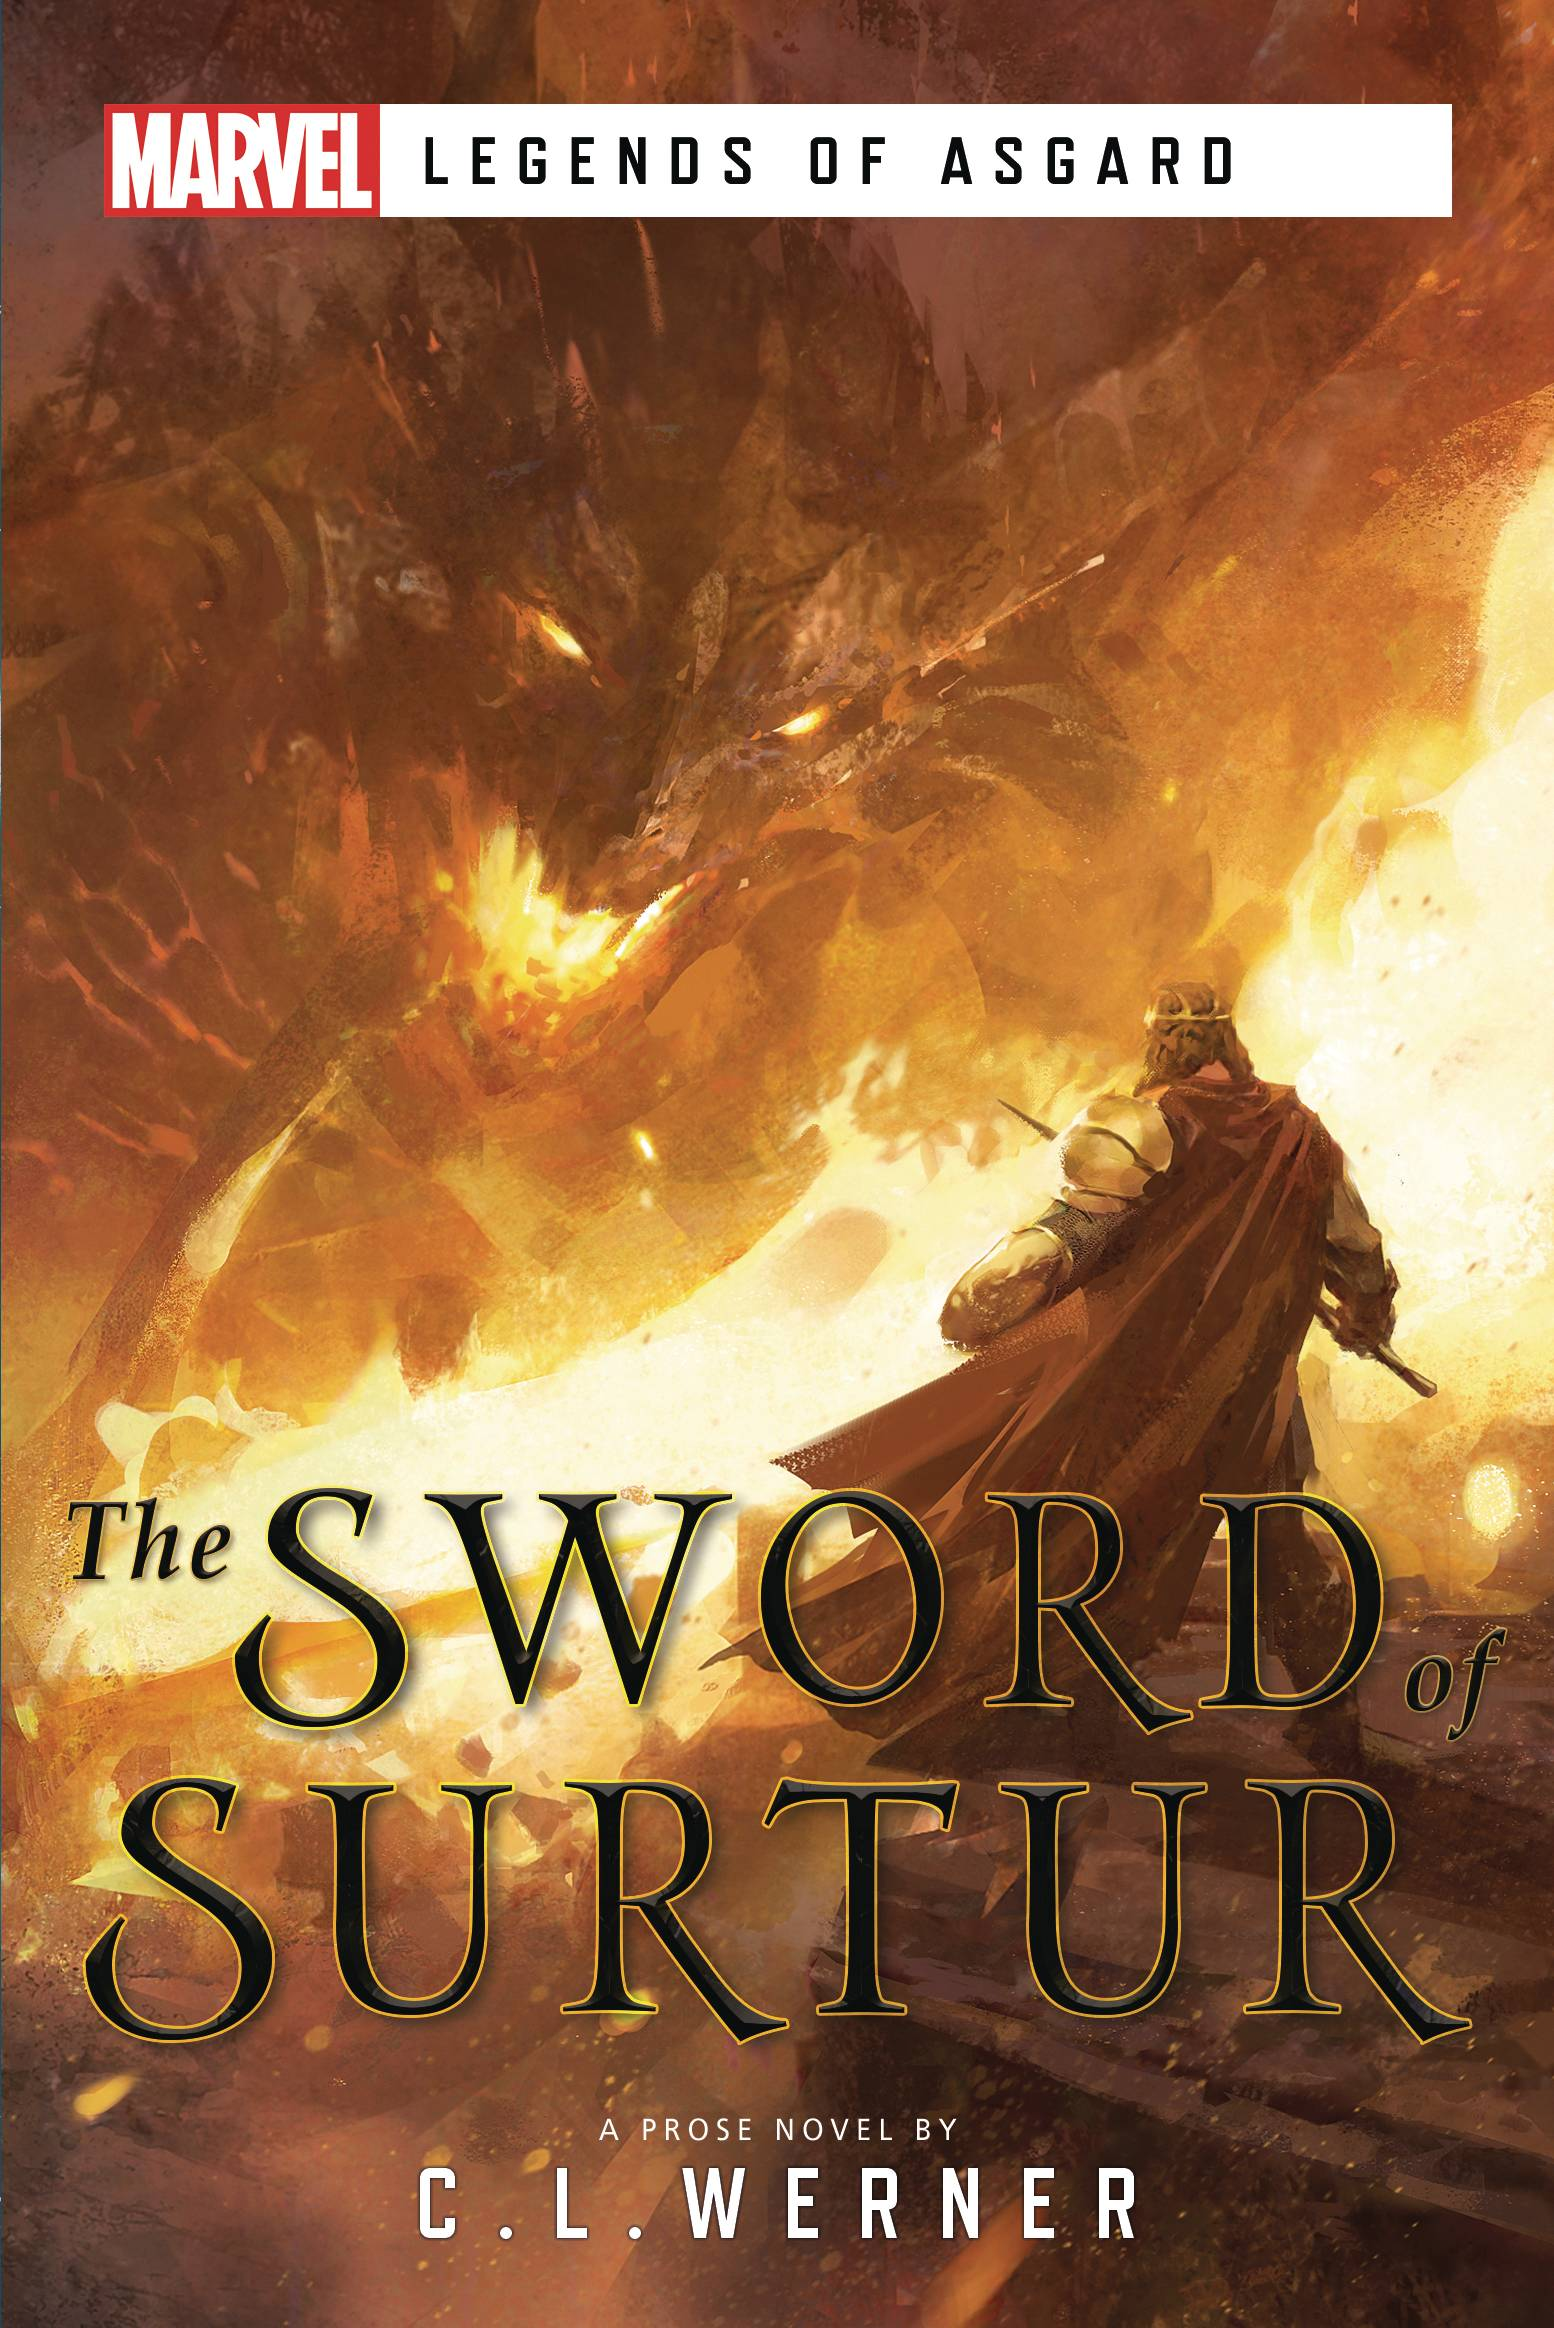 MARVEL UNTOLD NOVEL SC SWORD OF SURTUR